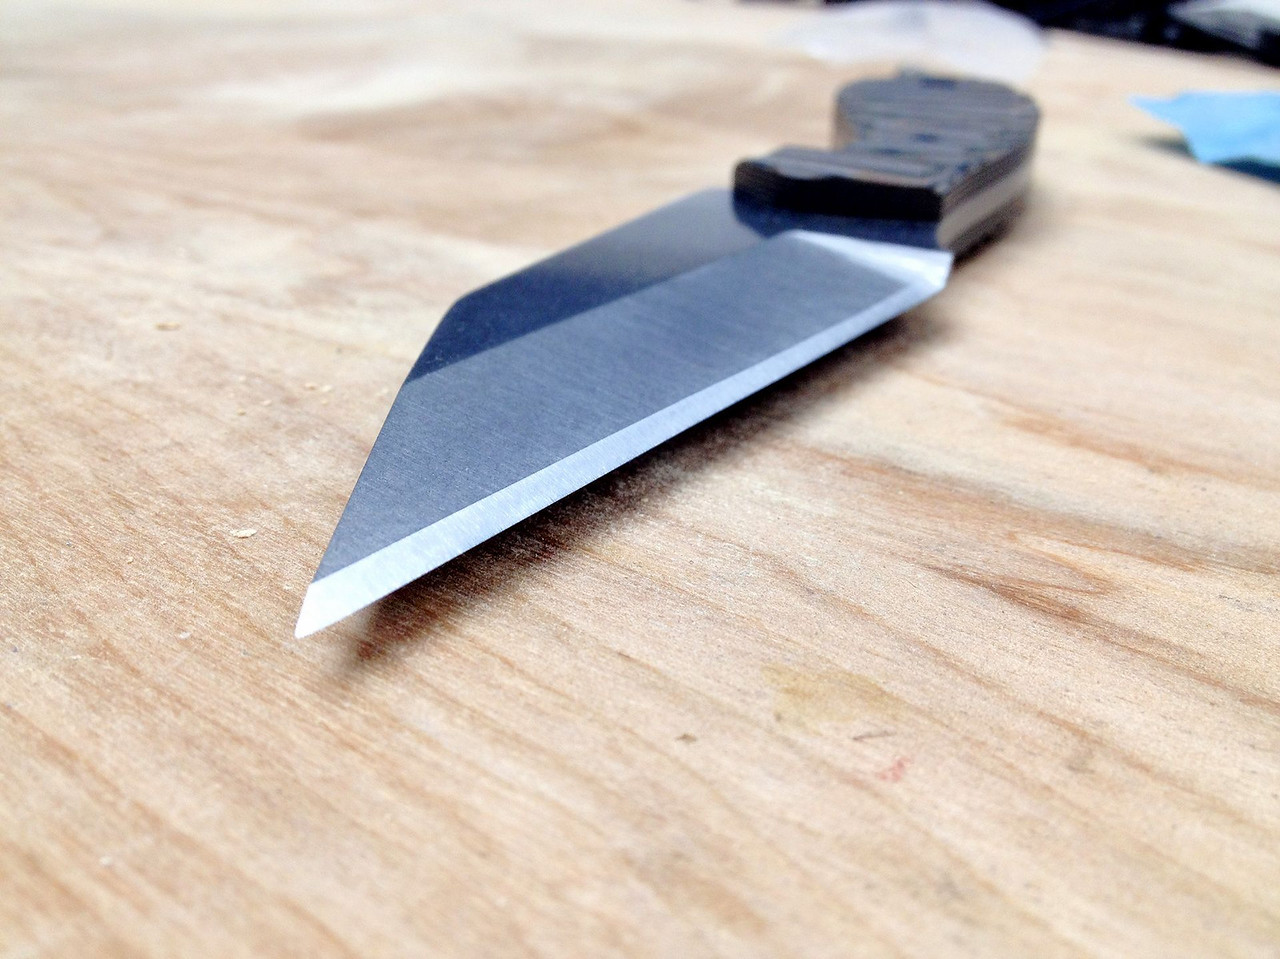 After the stonewashing, I sharpened her up.  I was able to get this one SHARP.